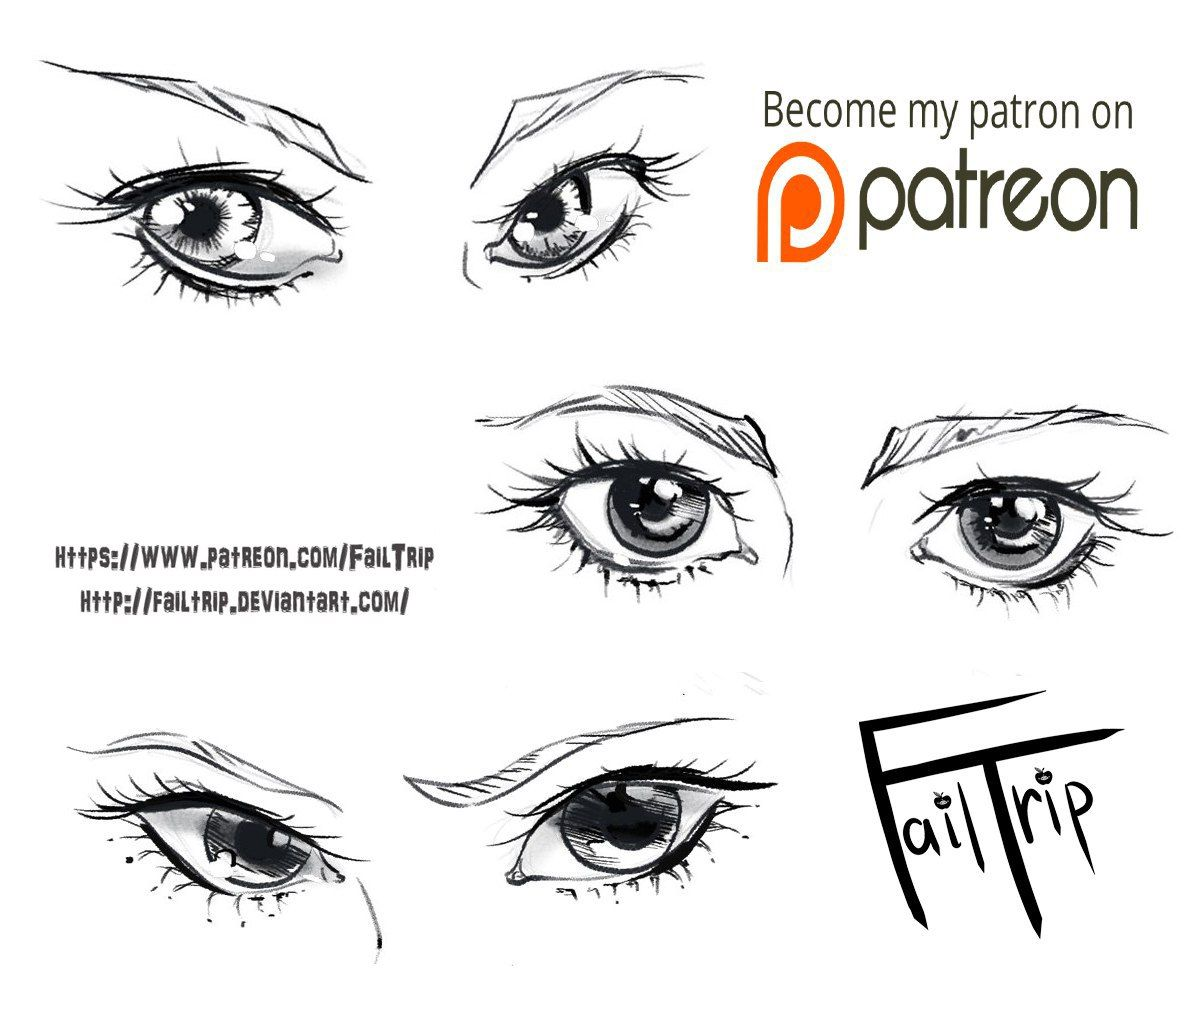 You can support me for the in Patreon and get all 6 Six pairs of eyes in Original Resolution! www.patreon.com/...   #set #anatomy #anatomydrawing #anatomystudy #animemanga #animestyle #animetutorial #drawingtutorial #poses #tutorial  #reference_sheet #reference_poses #animetutorial #references #posesset #posestudy